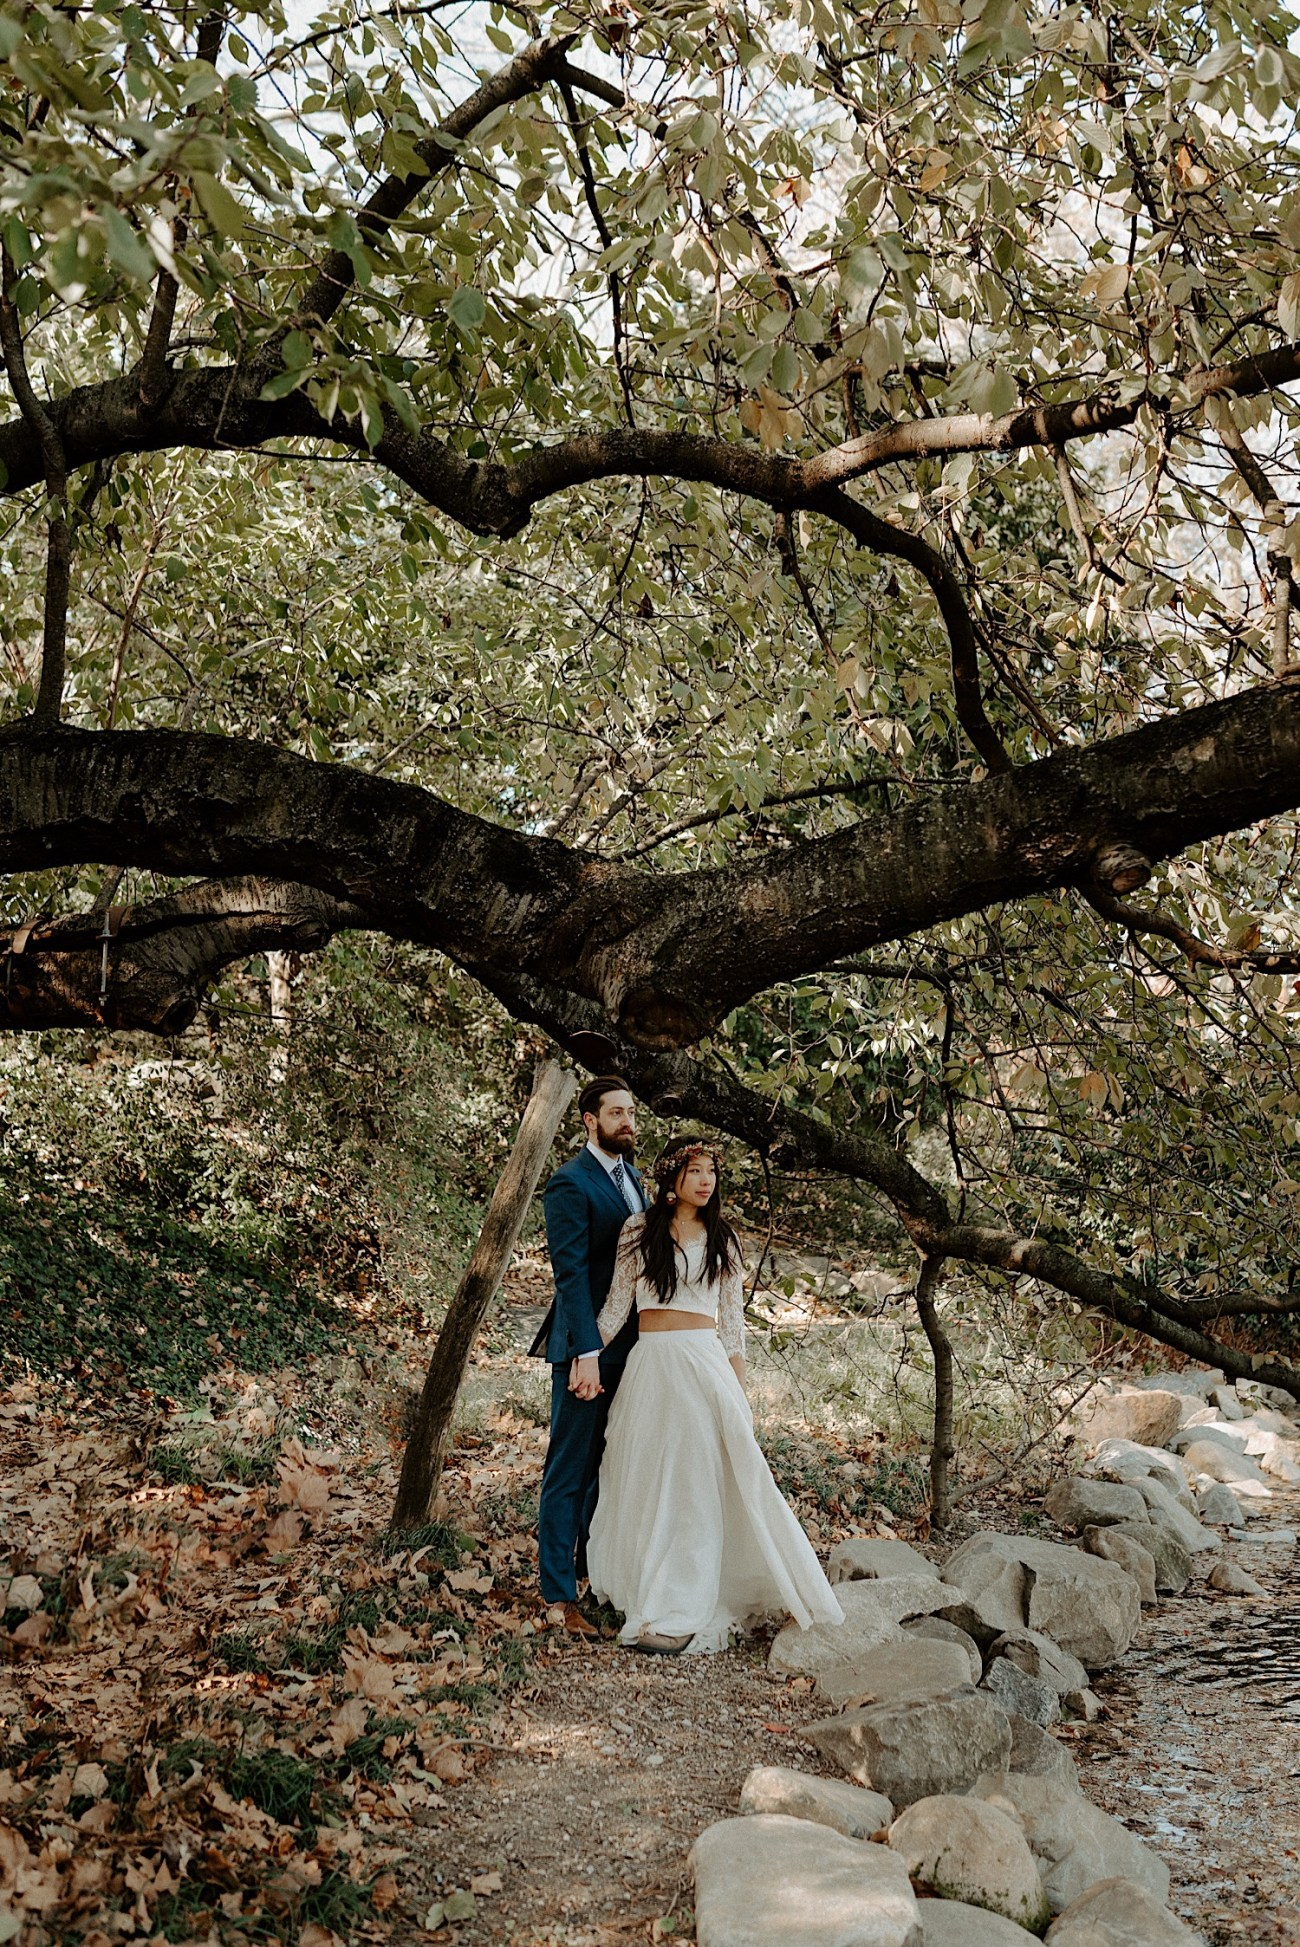 Brooklyn Botanic Garden Wedding Brooklyn Wedding Venue New York Wedding Photographer NYC Elopement 24